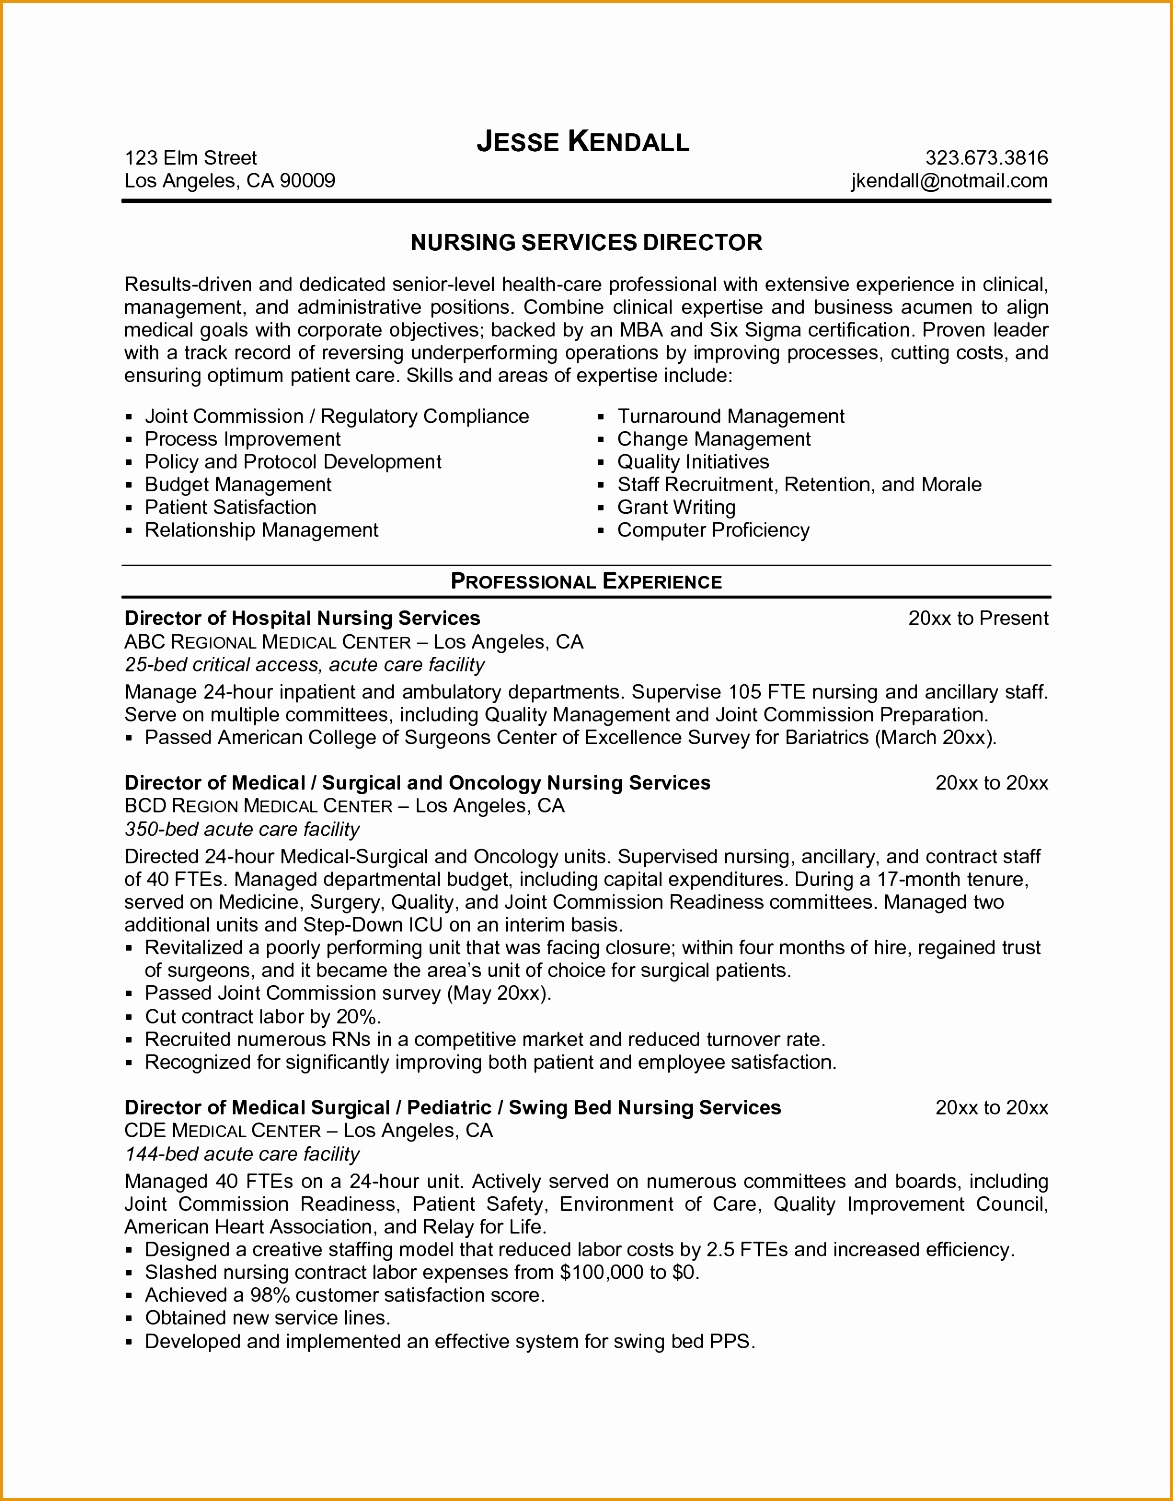 Custom Illustration Middot Medical Surgical Nursing Resume Sle